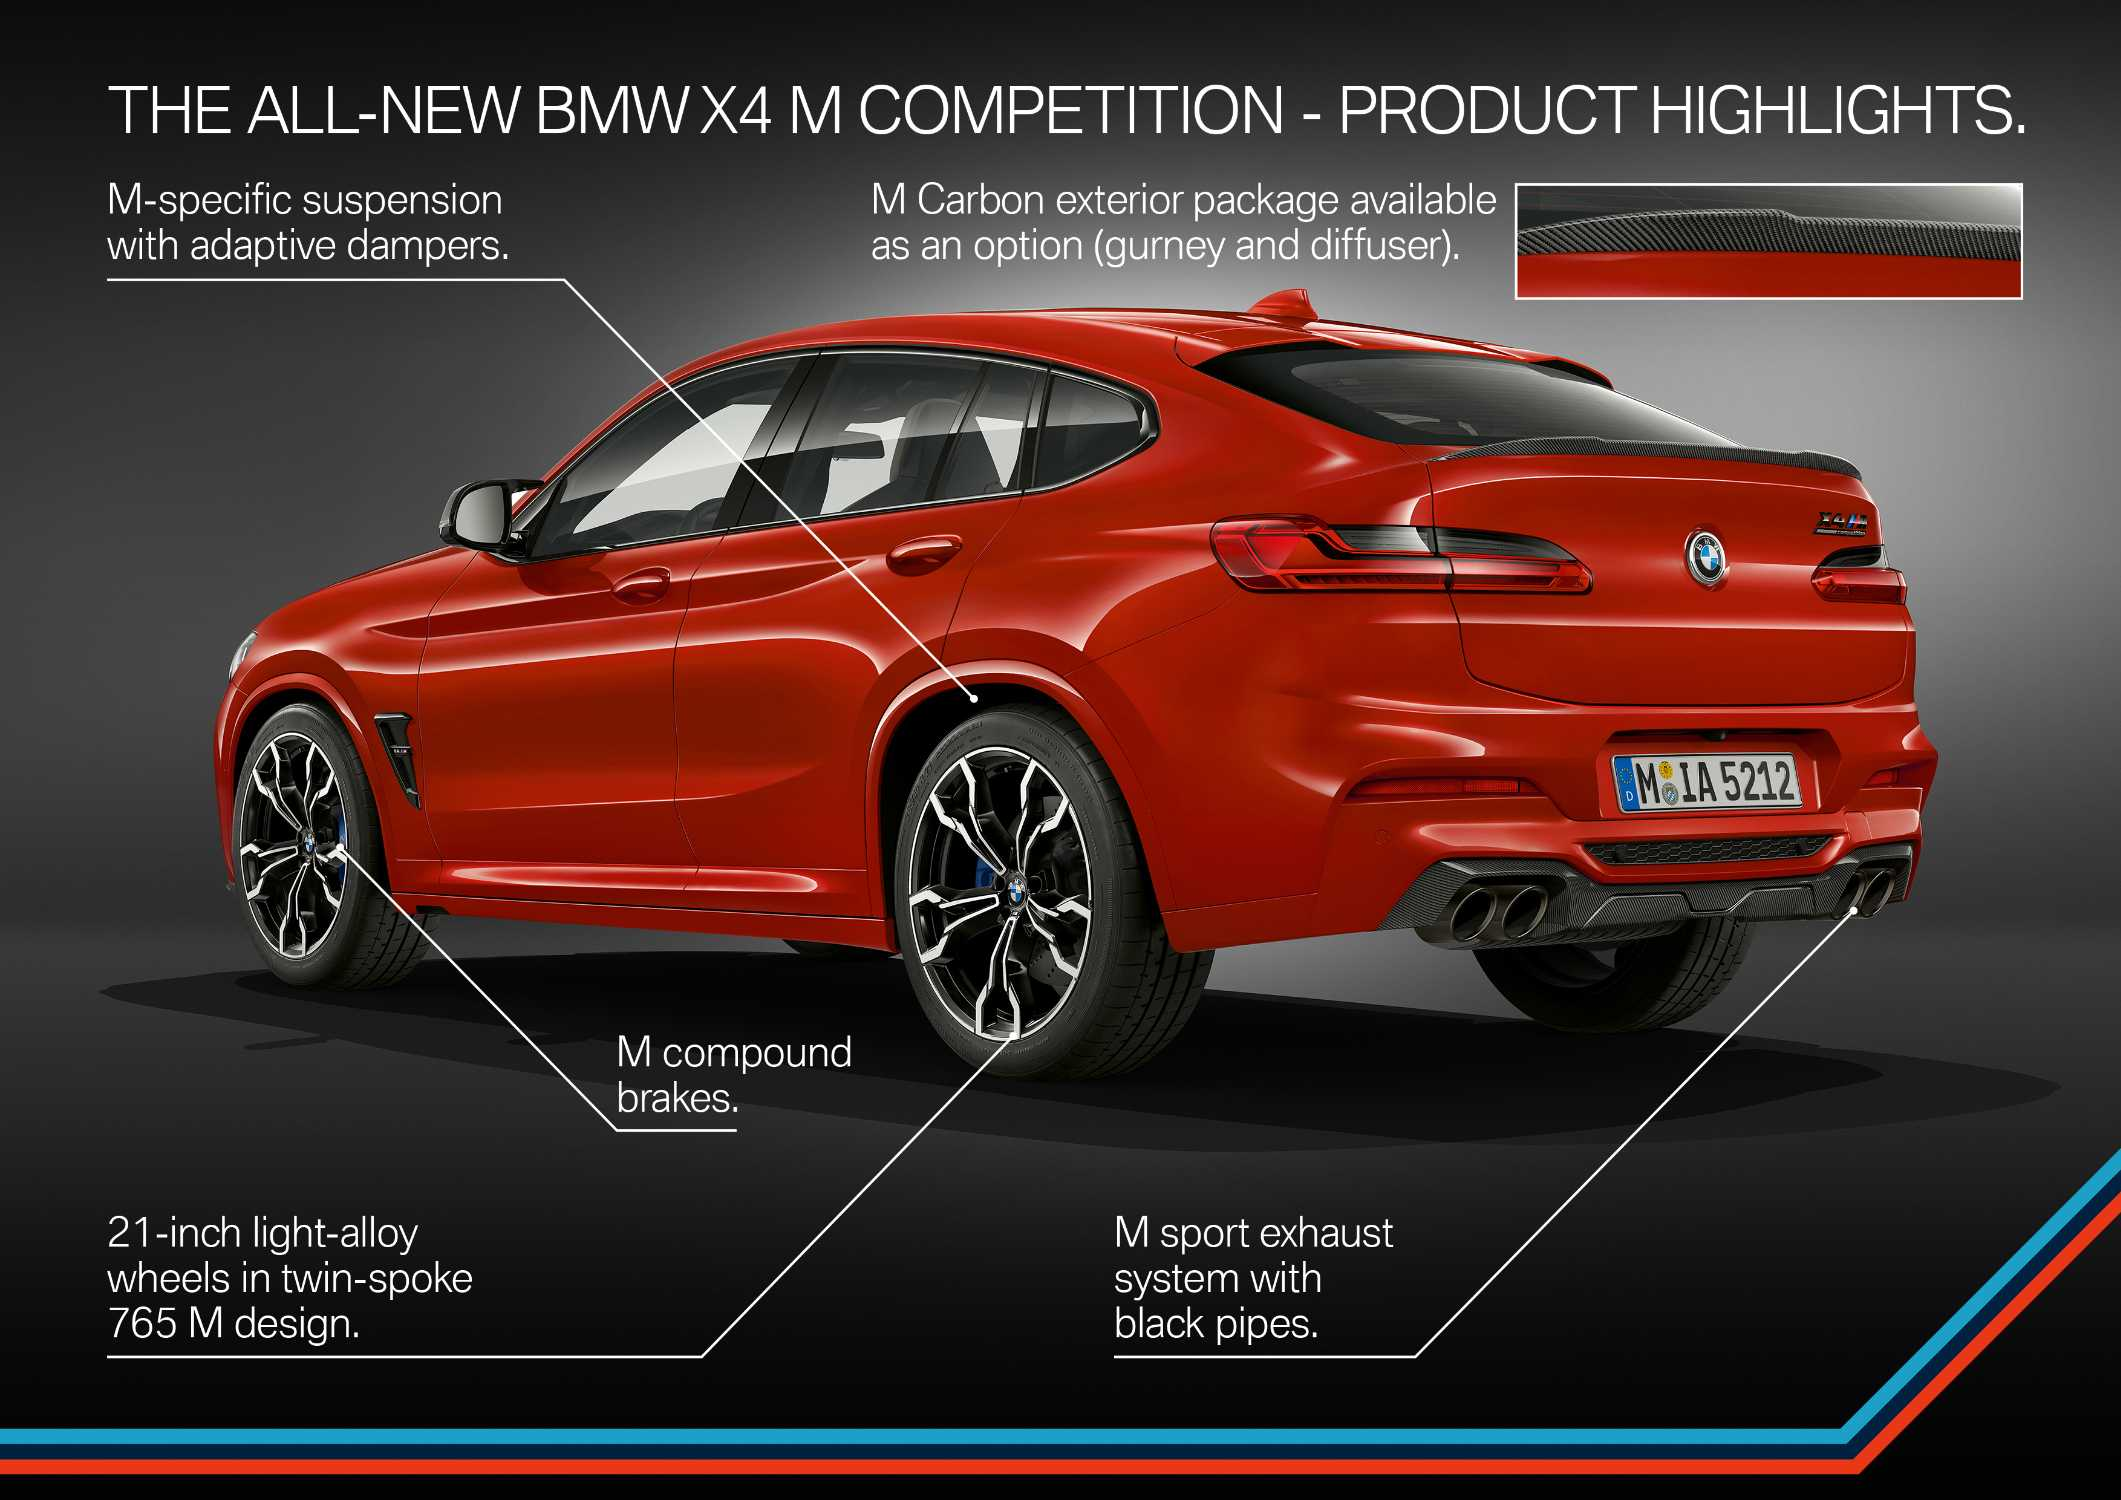 The all-new BMW X4 M Competition (02/2019).